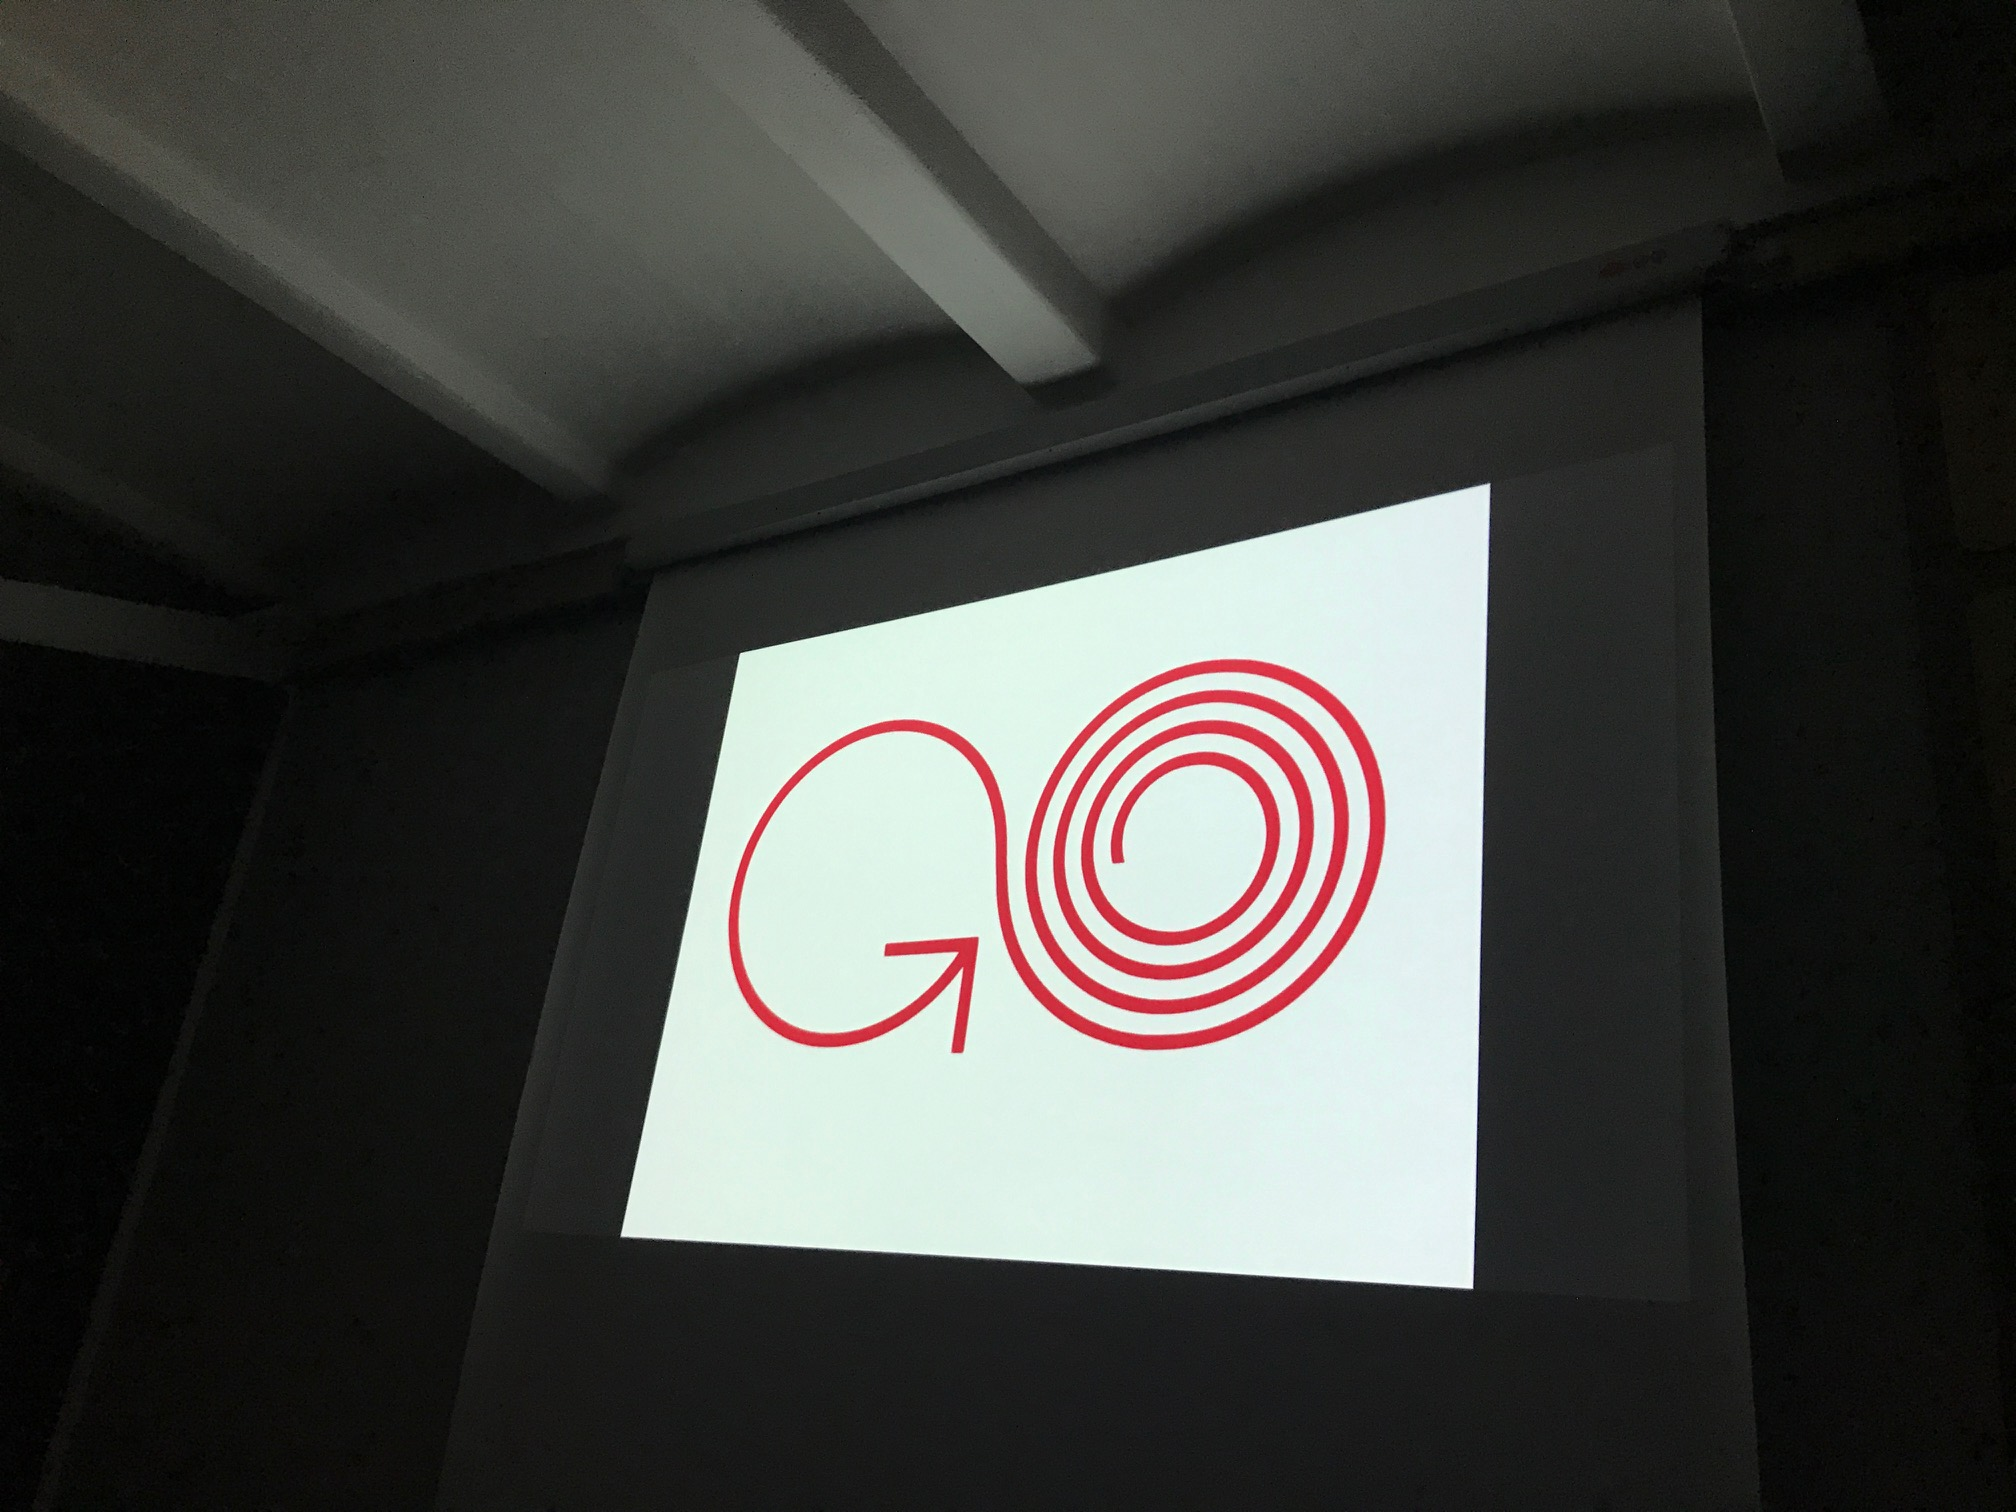 MediaVita attend October's Typographic Event